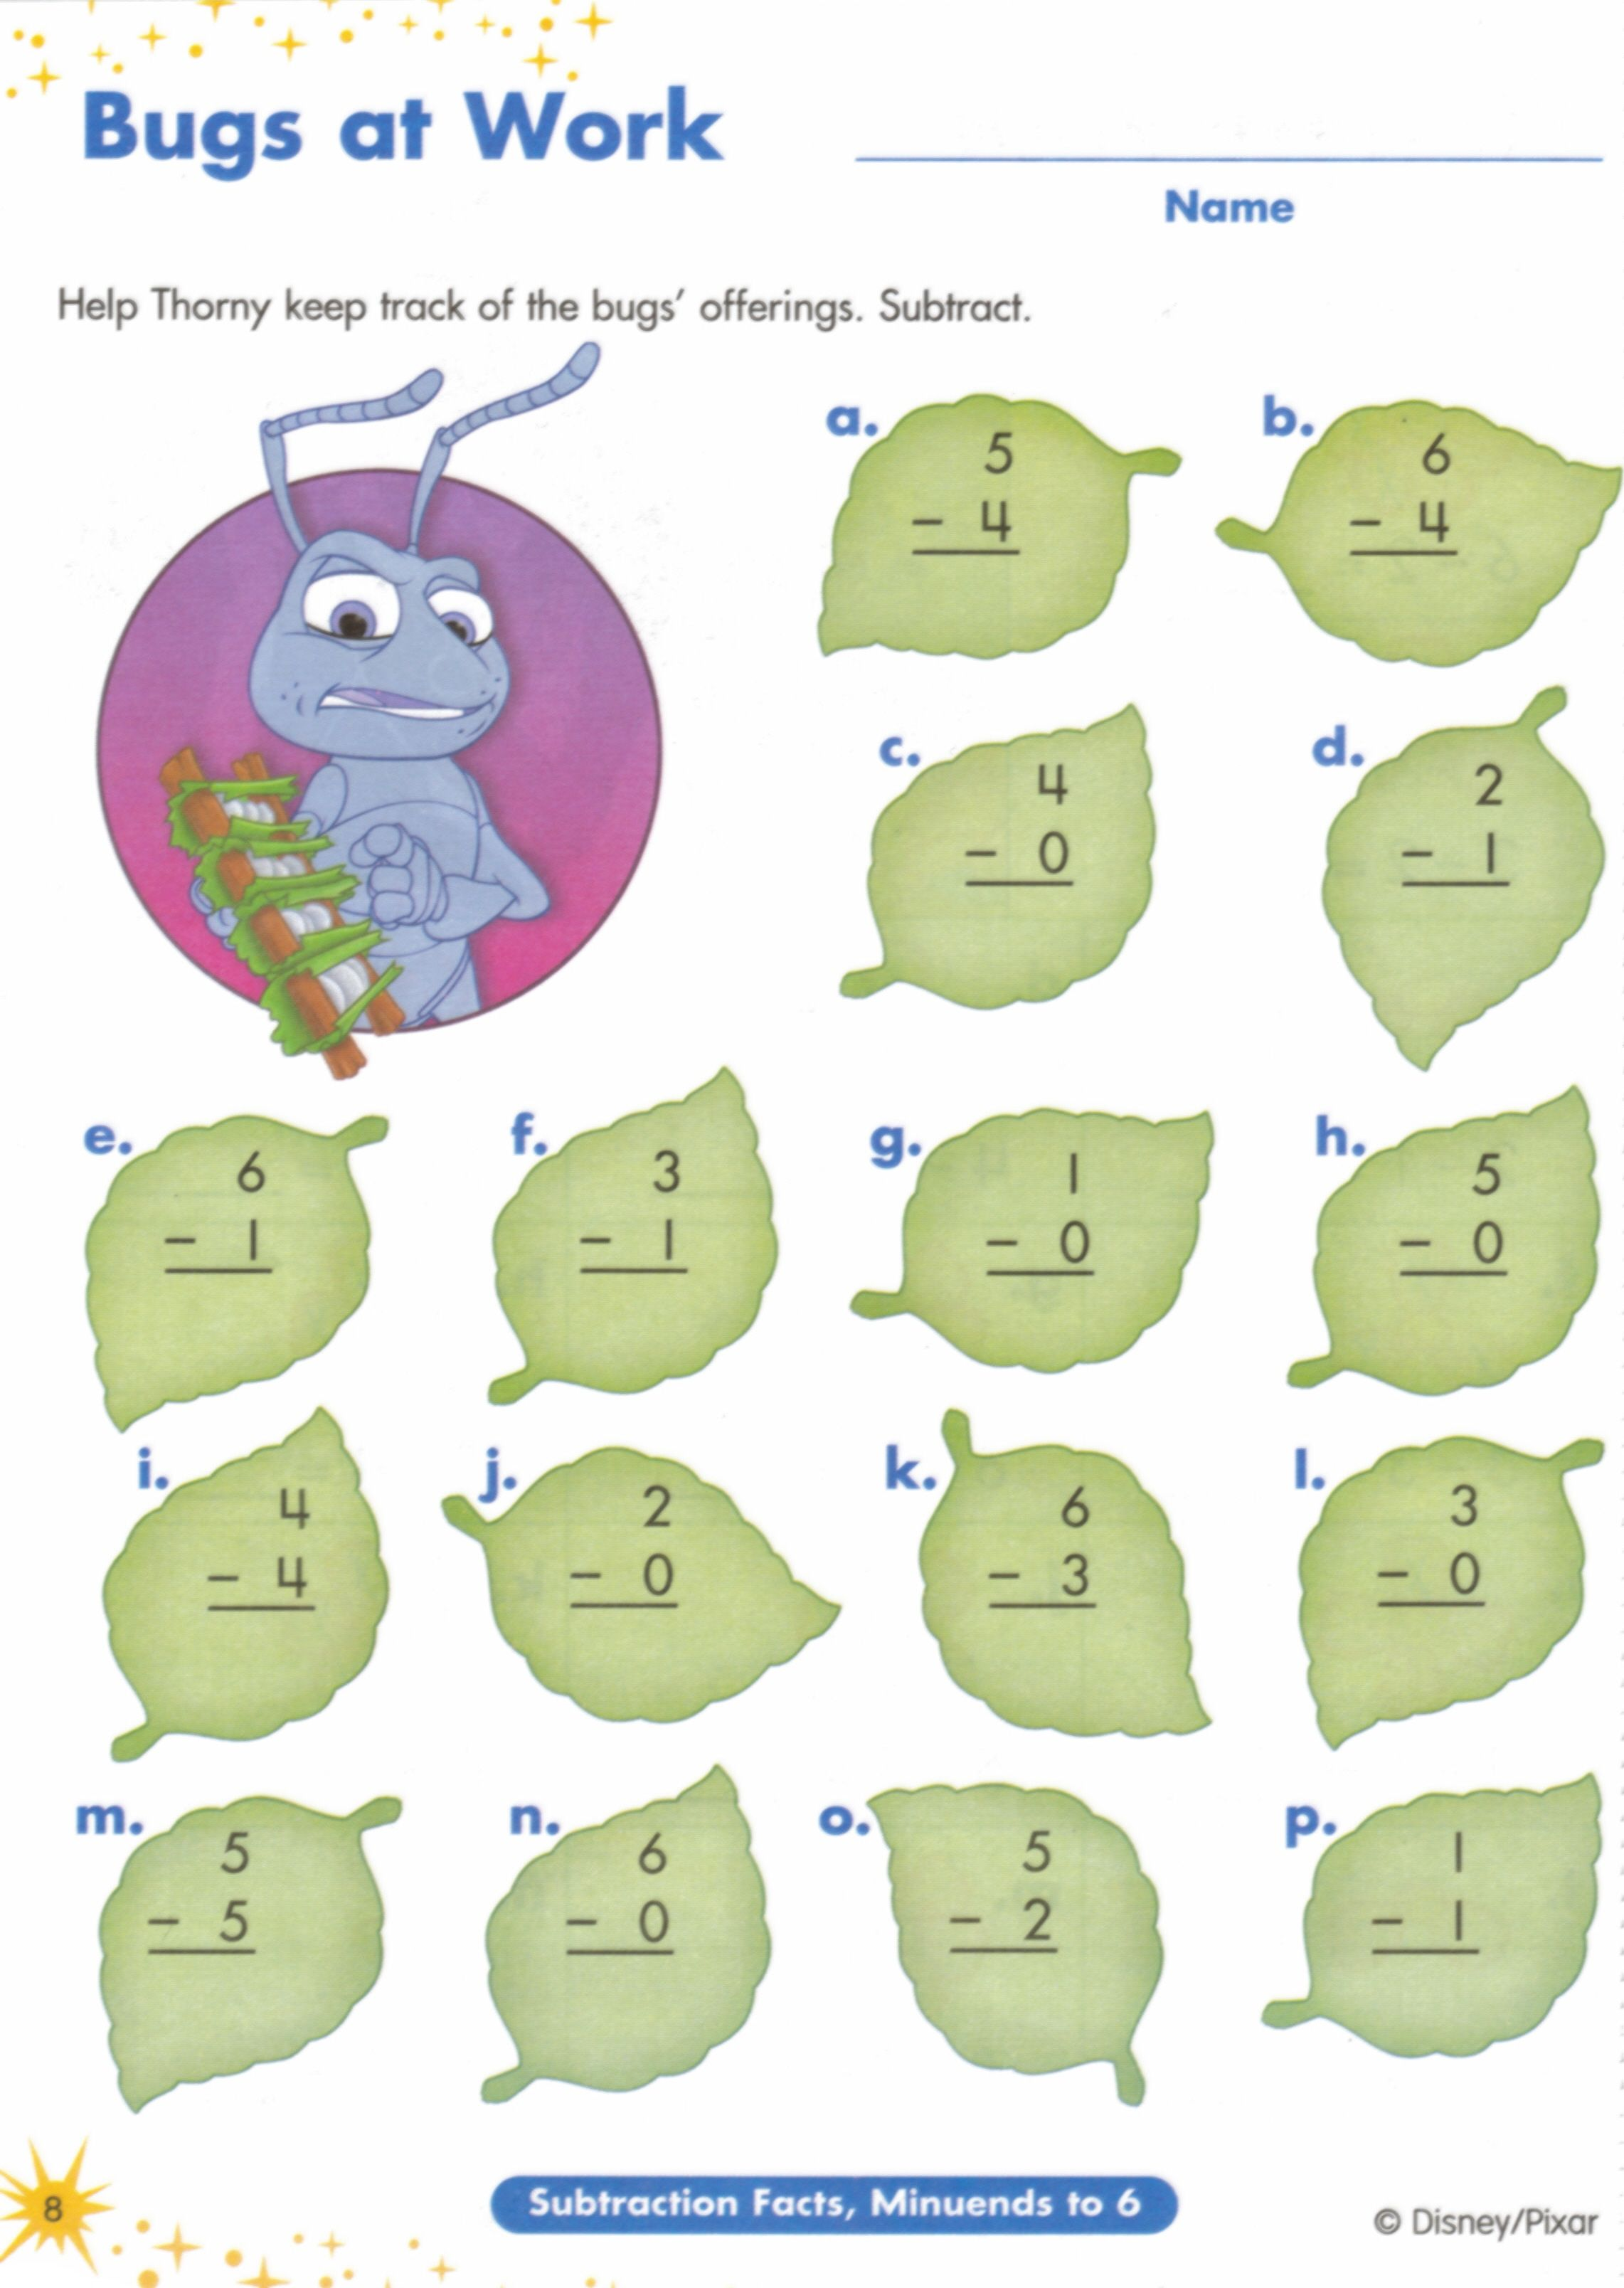 Weirdmailus  Outstanding  Images About Worksheets On Pinterest  Fun Facts For Kids  With Lovely  Images About Worksheets On Pinterest  Fun Facts For Kids Earth Day Worksheets And Jungles With Endearing Worksheet In Computer Also Adverb Worksheets With Answers In Addition Preschool Literacy Worksheets And Bar Graphs And Pictographs Worksheets As Well As Worksheet For Adjectives Additionally Analogies Worksheets Th Grade From Pinterestcom With Weirdmailus  Lovely  Images About Worksheets On Pinterest  Fun Facts For Kids  With Endearing  Images About Worksheets On Pinterest  Fun Facts For Kids Earth Day Worksheets And Jungles And Outstanding Worksheet In Computer Also Adverb Worksheets With Answers In Addition Preschool Literacy Worksheets From Pinterestcom